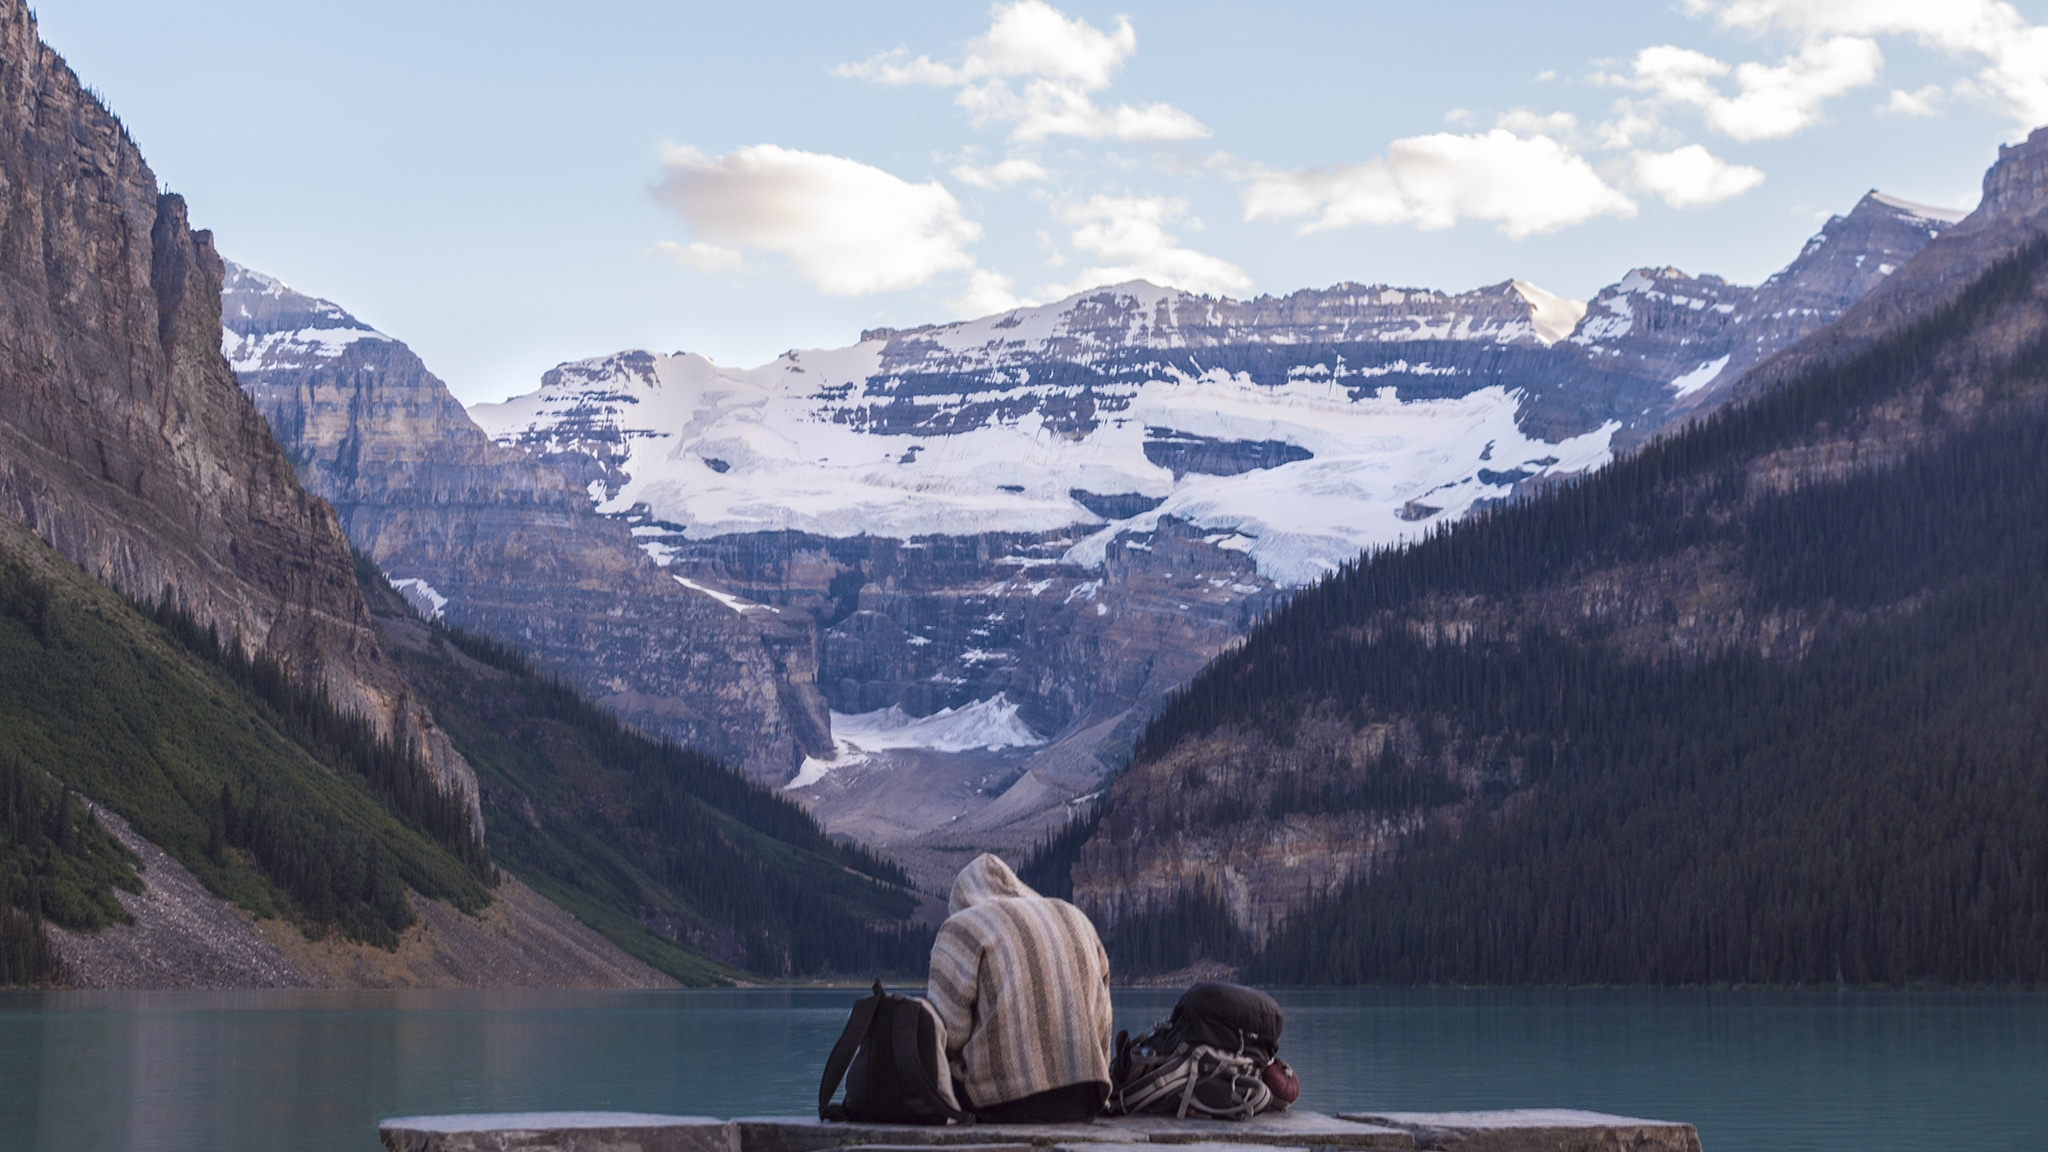 A wanderer in the Rockies